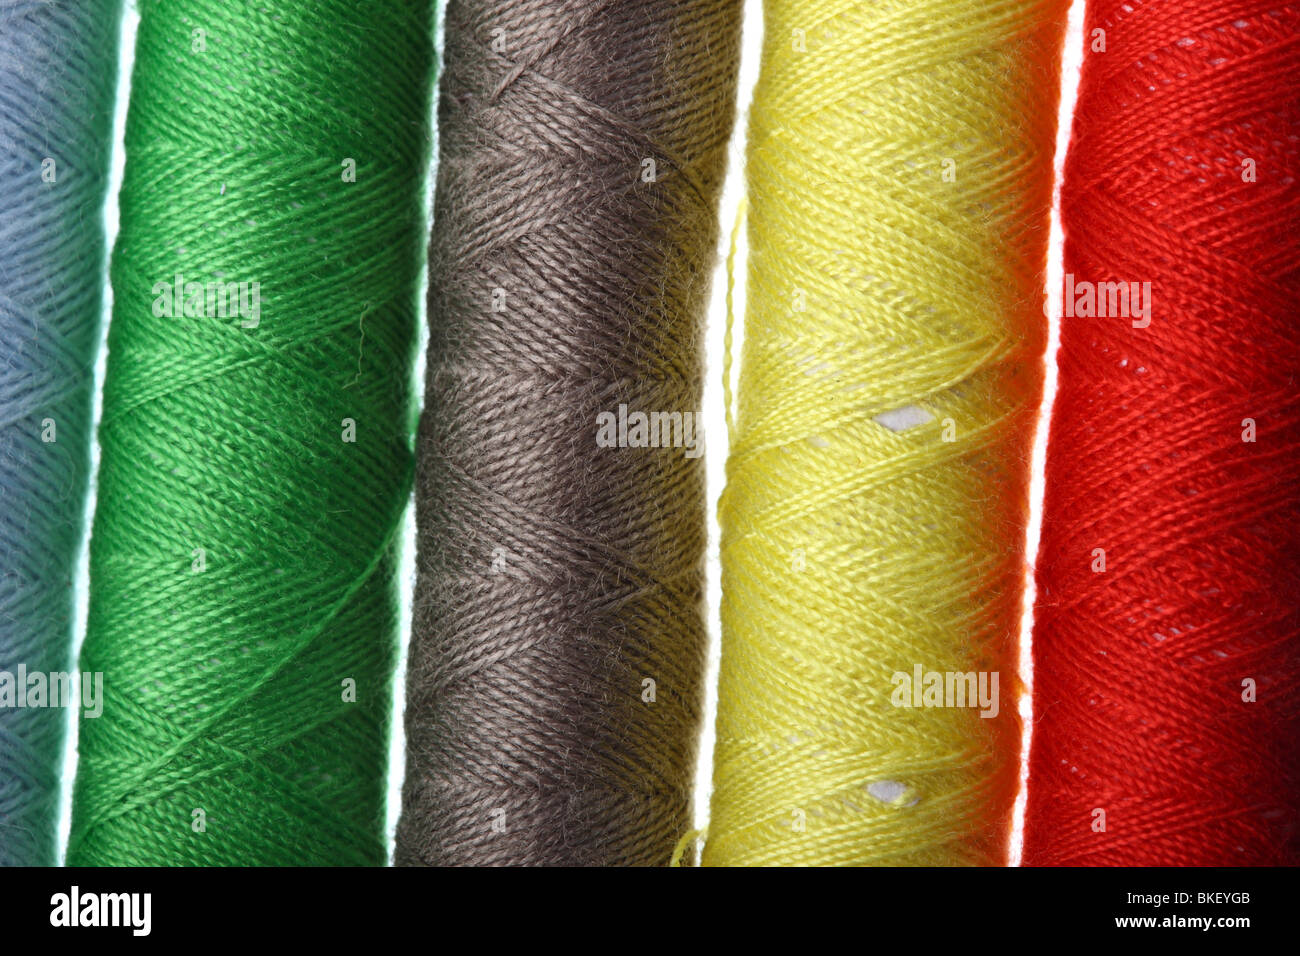 small sewing cotton in many colors, cotton, to stitch - Stock Image